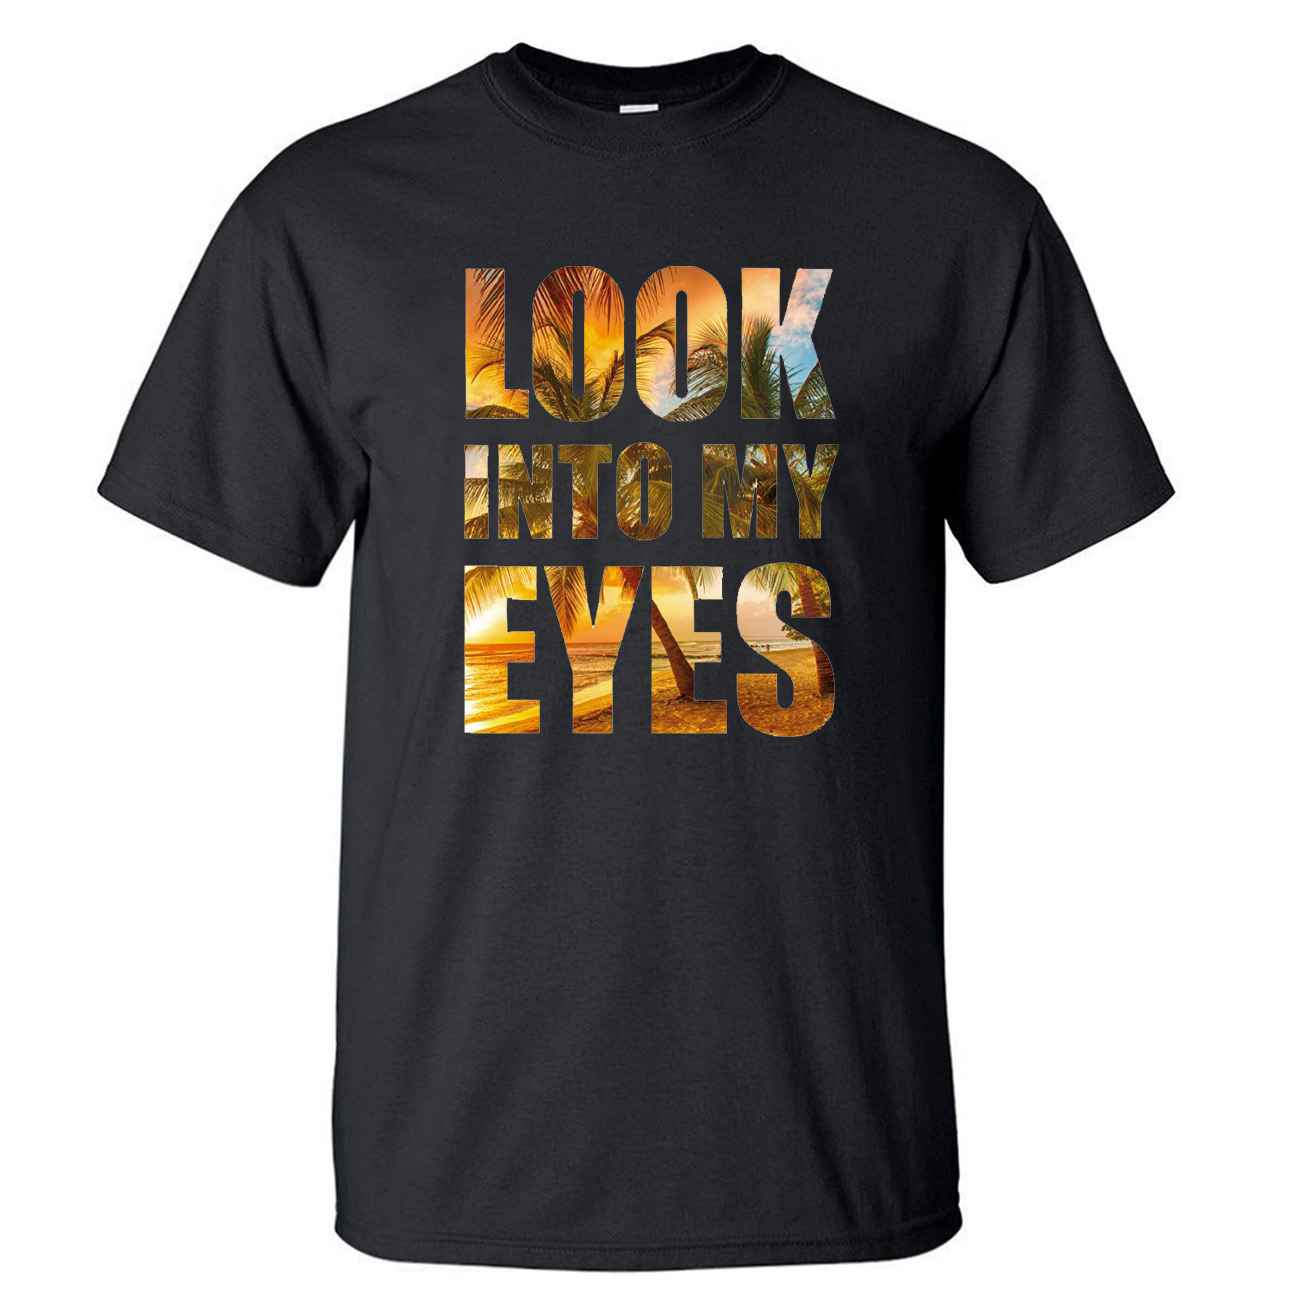 Look Into My Eyes Tshirt Men Black Music Tshirt Summer Cotton Short Sleeve Rock Kpop Workout Loose Hip Hop T-Shirt Tees Tops image